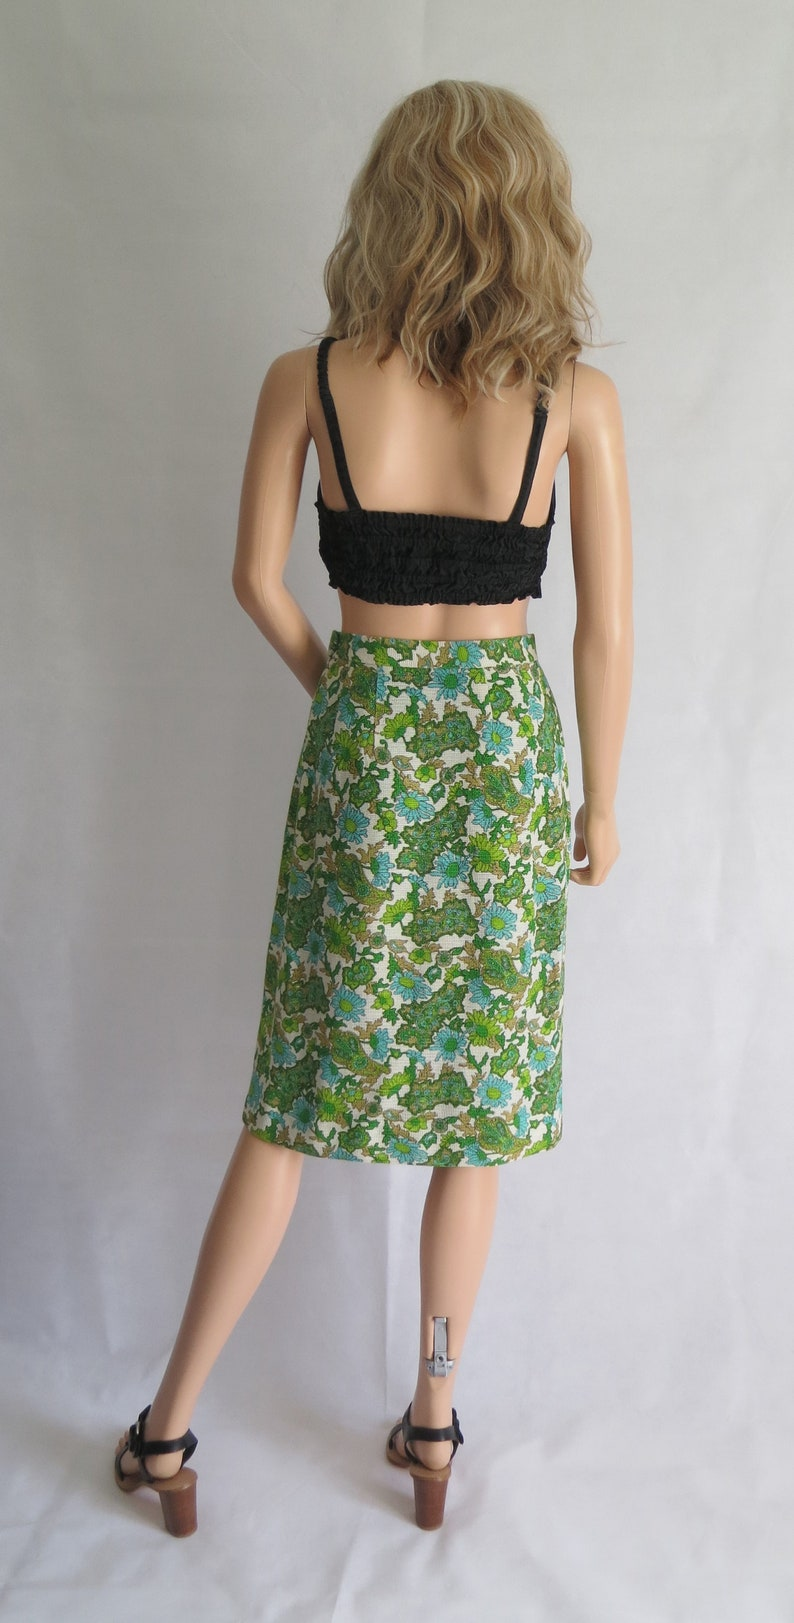 straight cut Vintage green floral skirt high waisted x small waist 24.5 french 60s vintage retro knee length white turquoise green